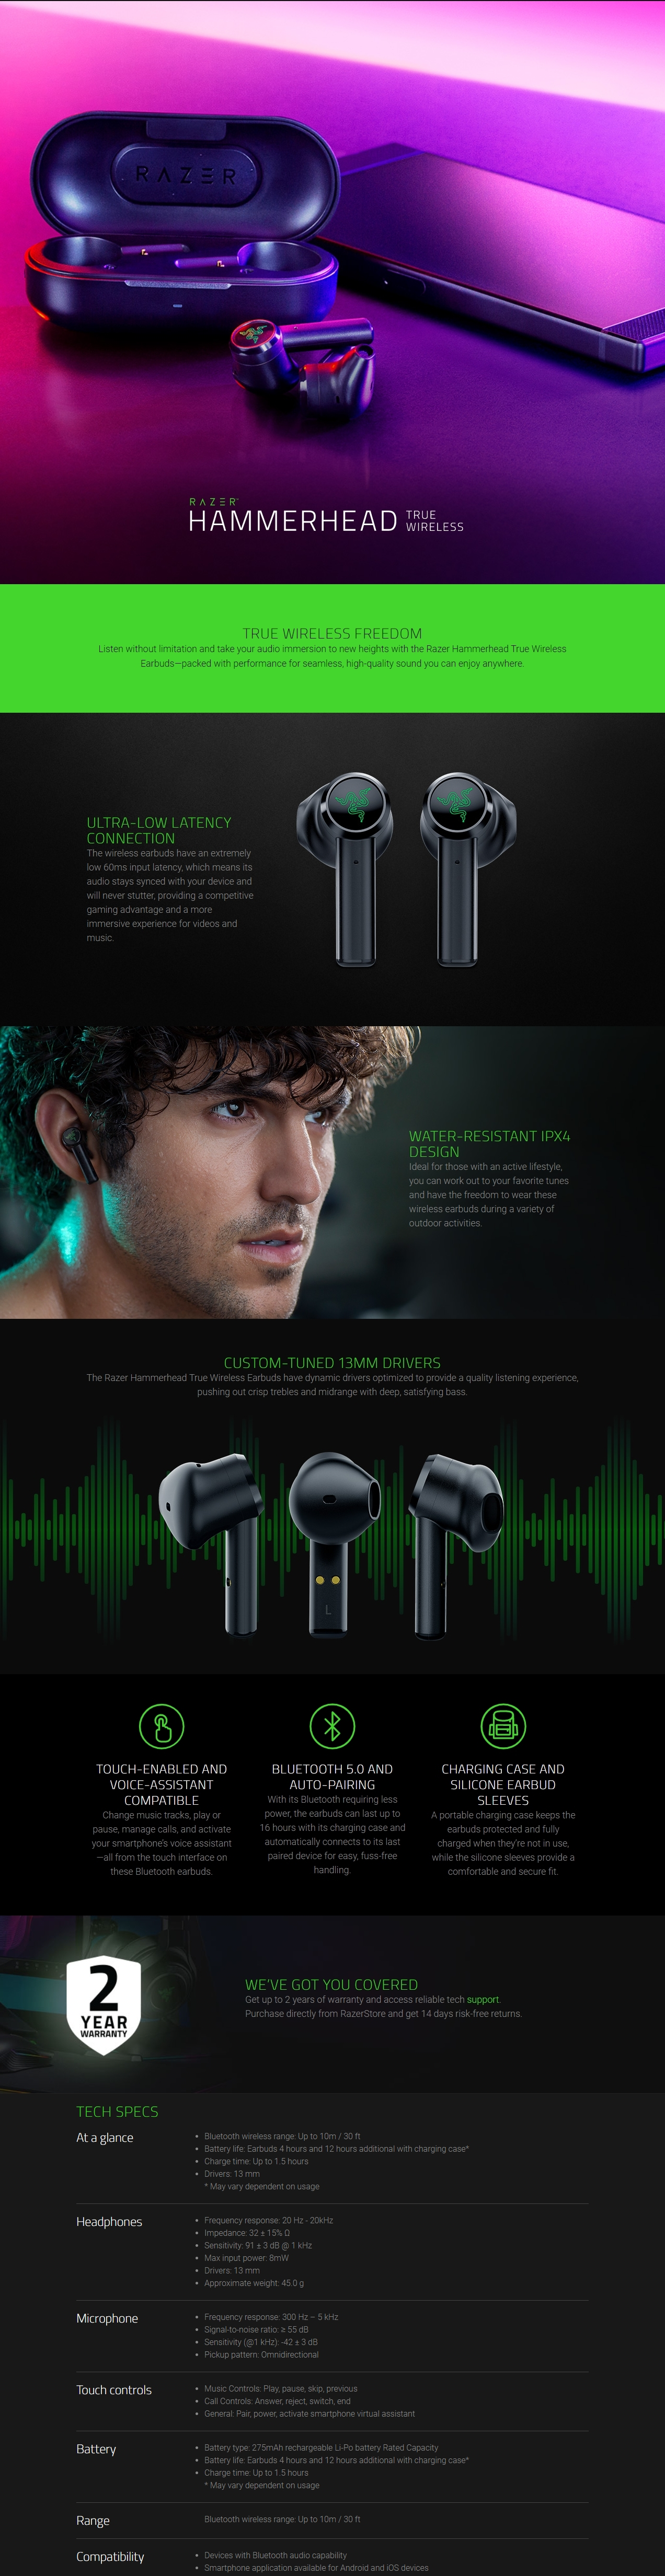 A large marketing image providing additional information about the product Razer Hammerhead Wireless In-Ear Headphones - Additional alt info not provided